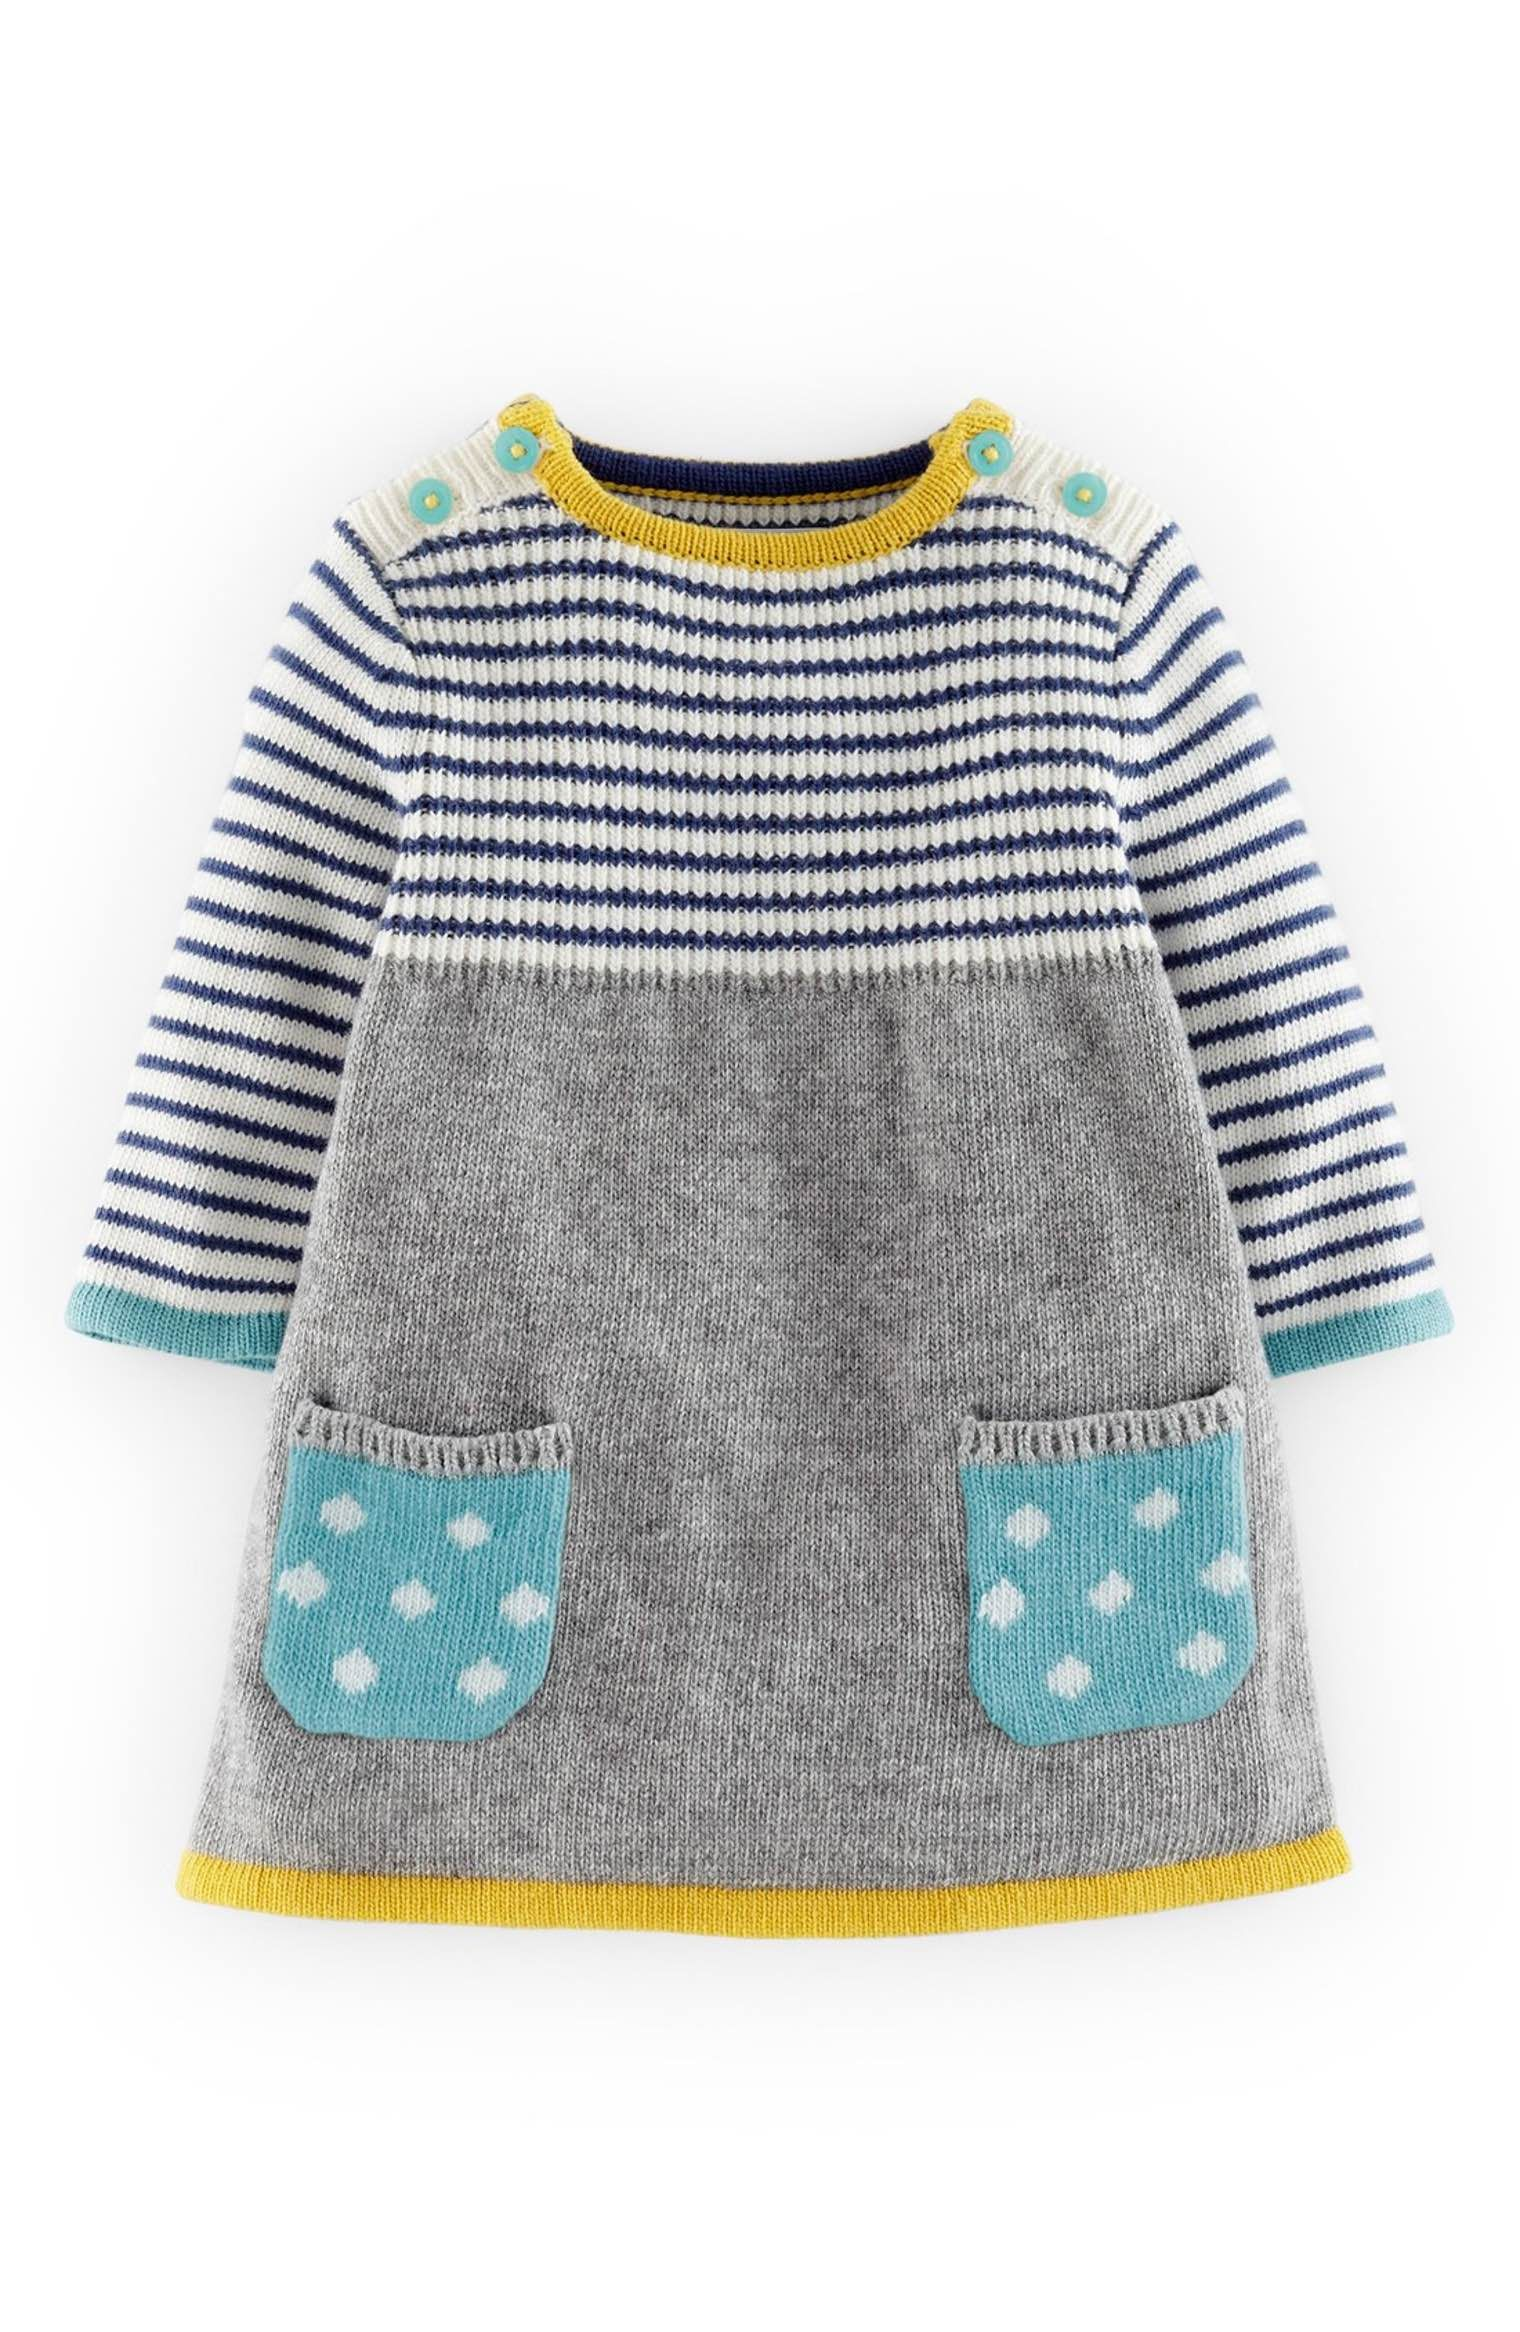 Knit Sweater Sweet Boden Dressbaby Girls Main Mini Image uTlJc3F1K